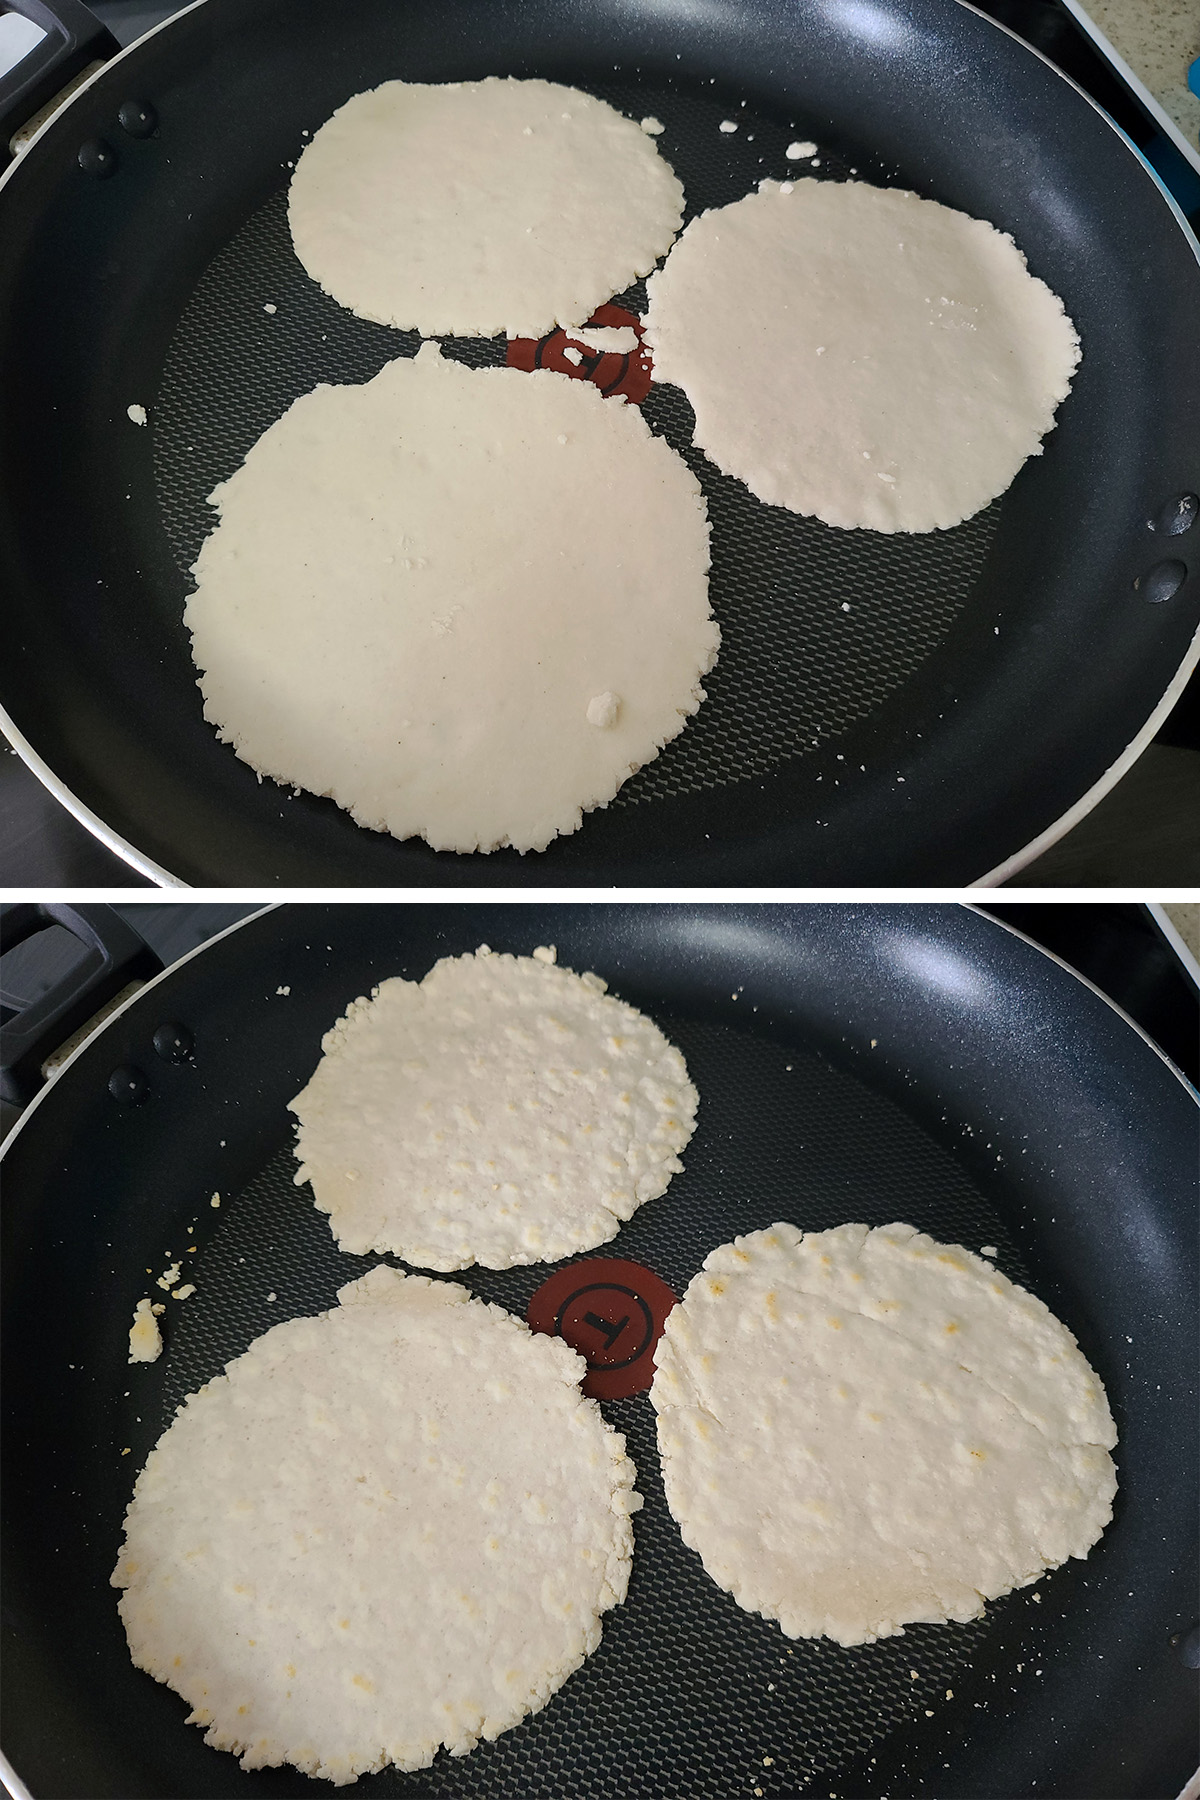 A two part image showing cassava flour tortillas being cooked in a pan.